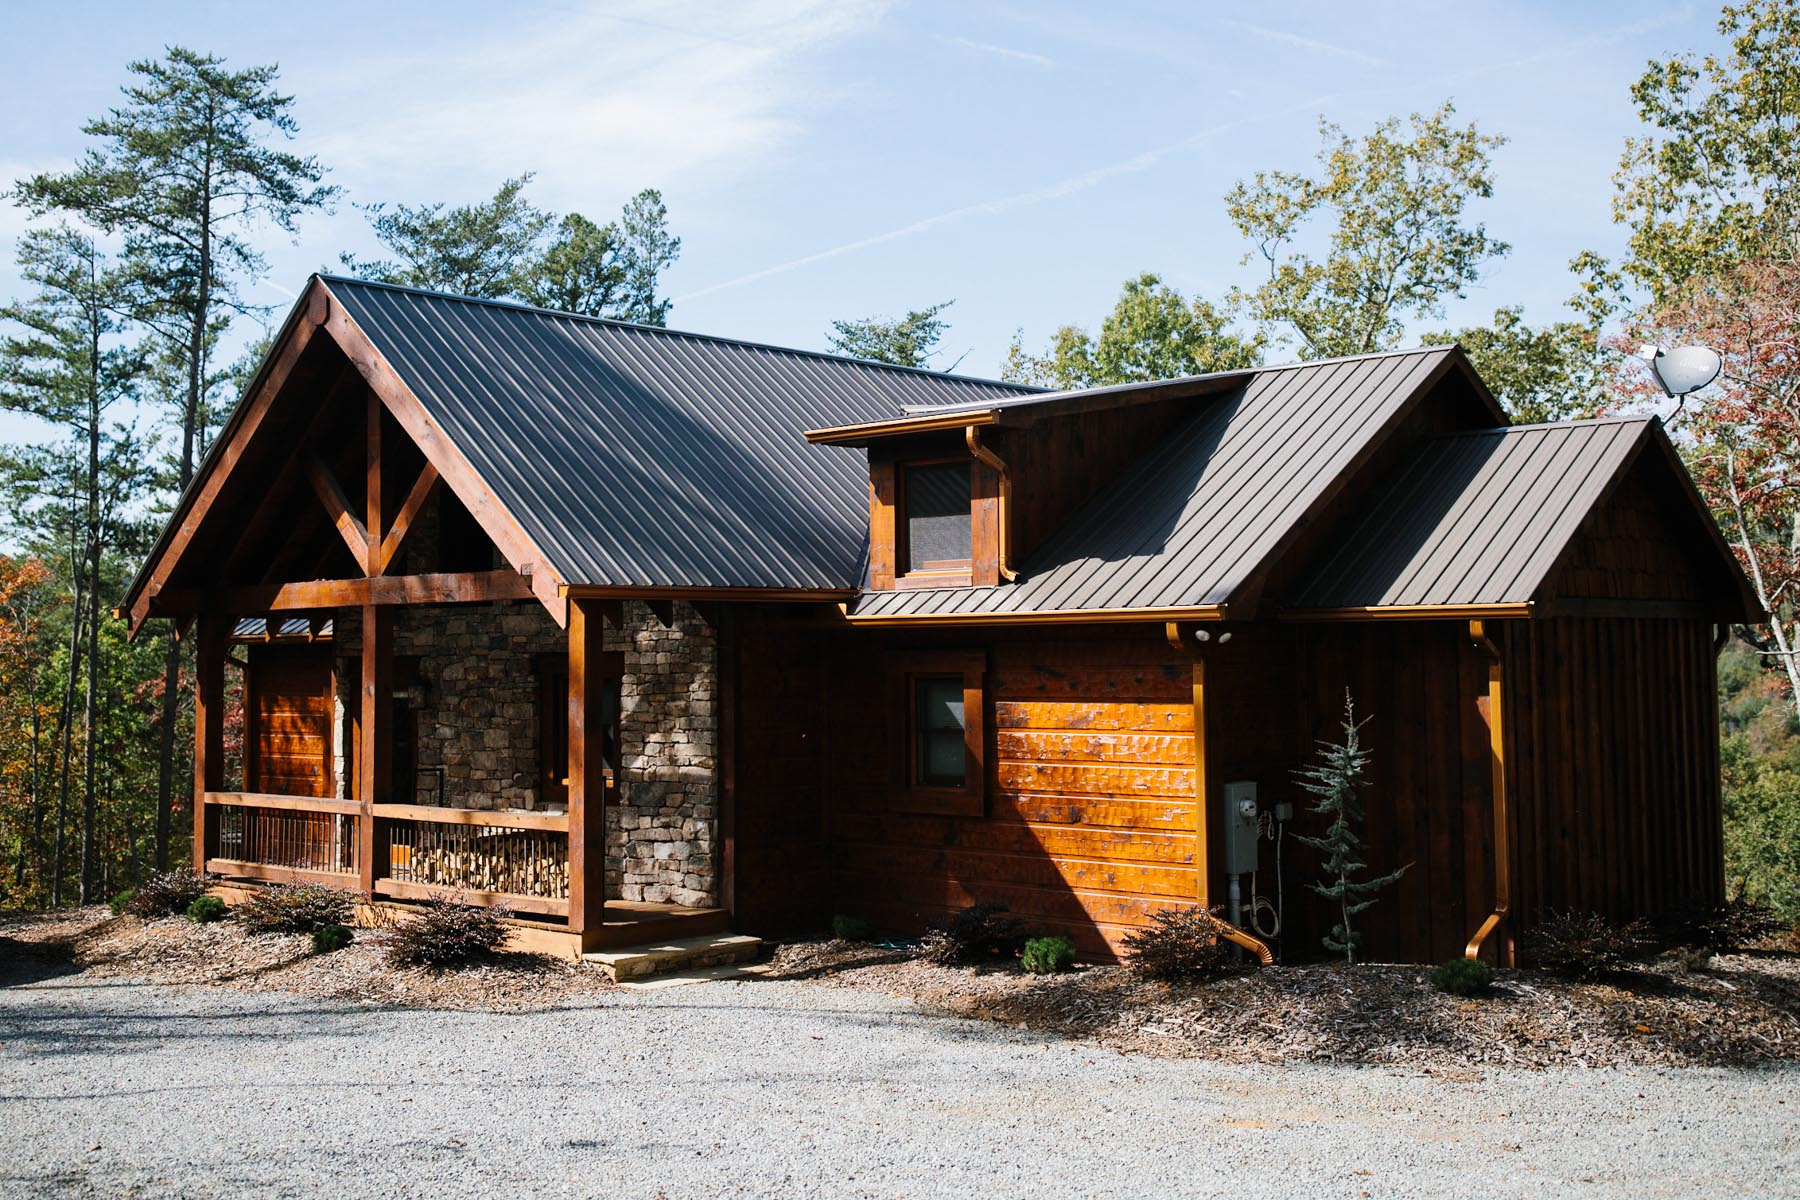 georgia about nifty cabin on decorating remodeling wonderful ideas simple cabins awesome home remodel rentals mountains mountain with north